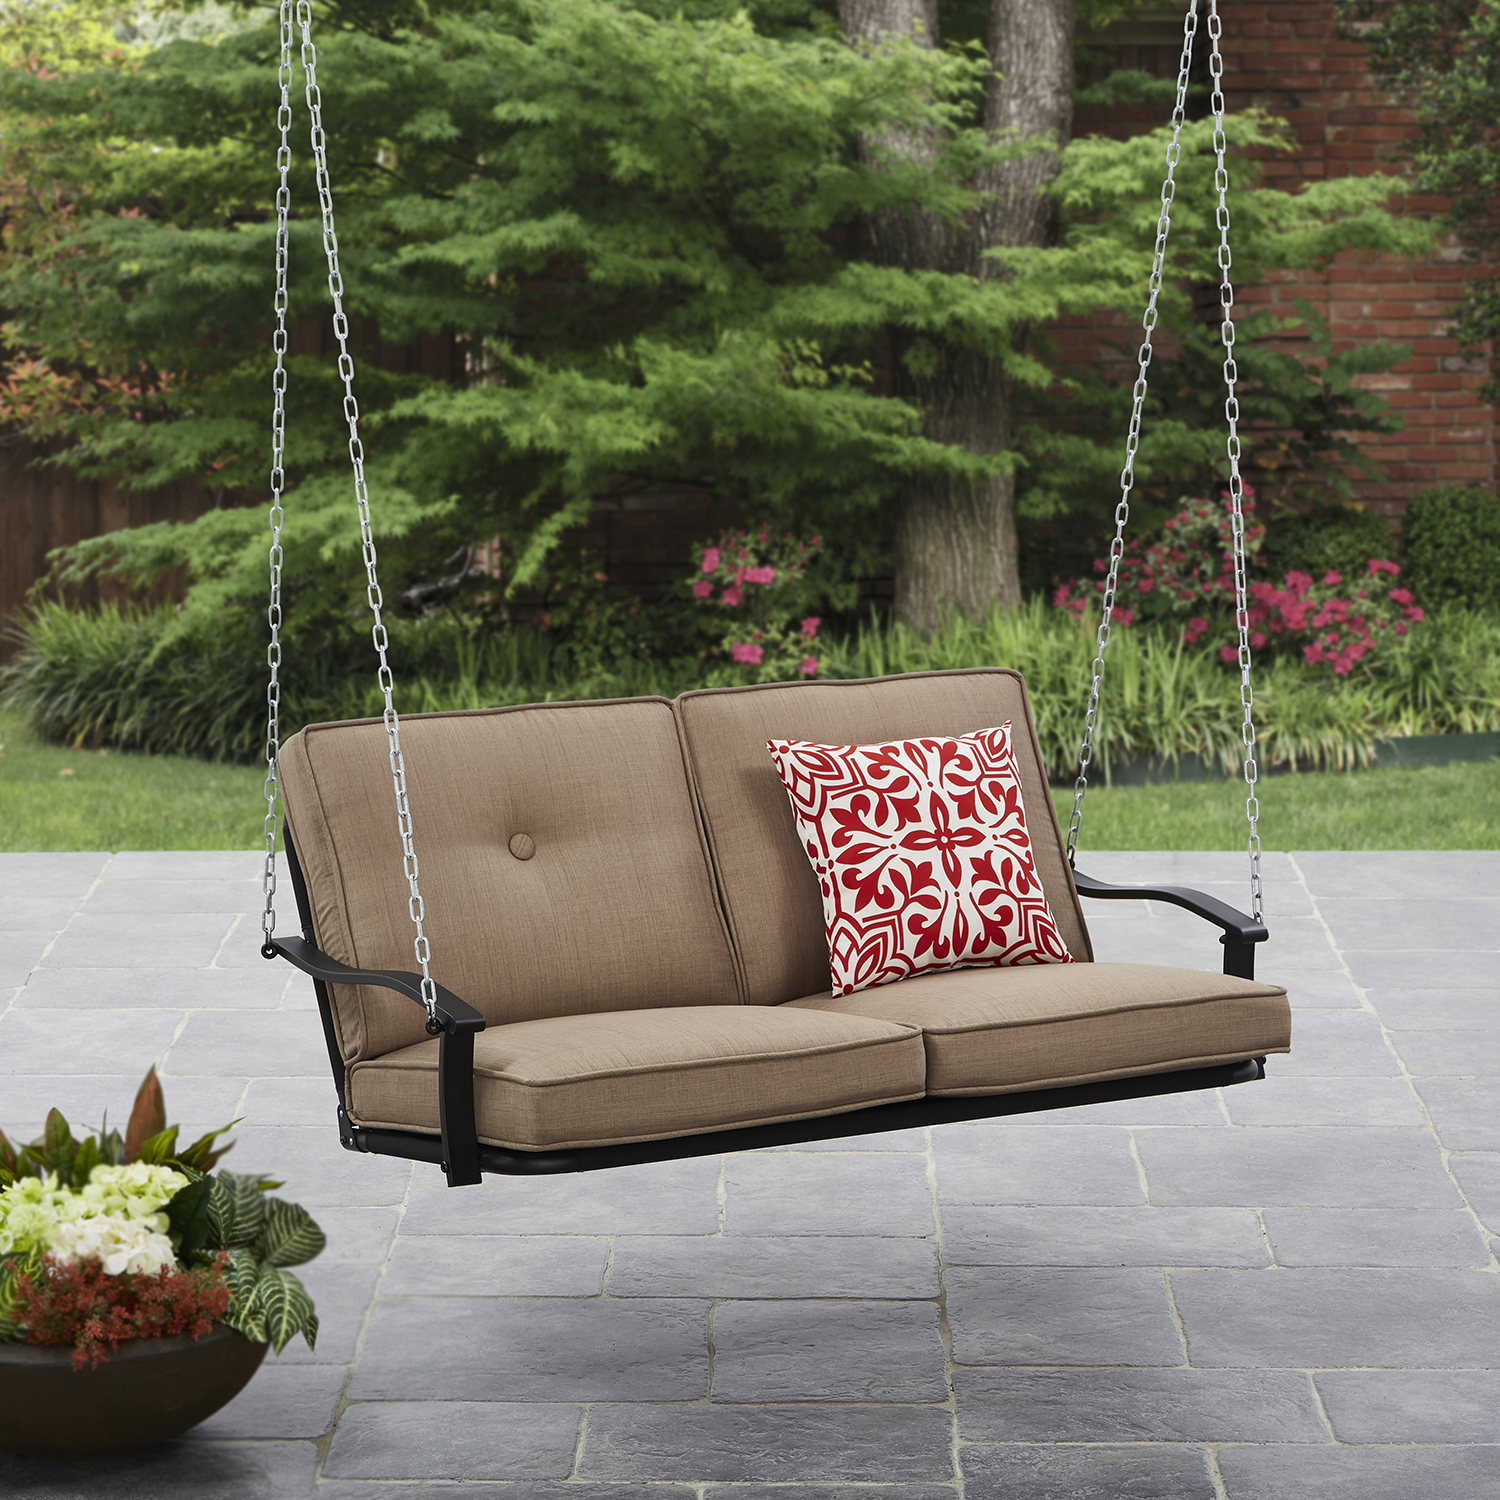 Mainstays Belden Park Outdoor Porch Swing with Cushion, Seats 2 by Courtyard Creations Inc